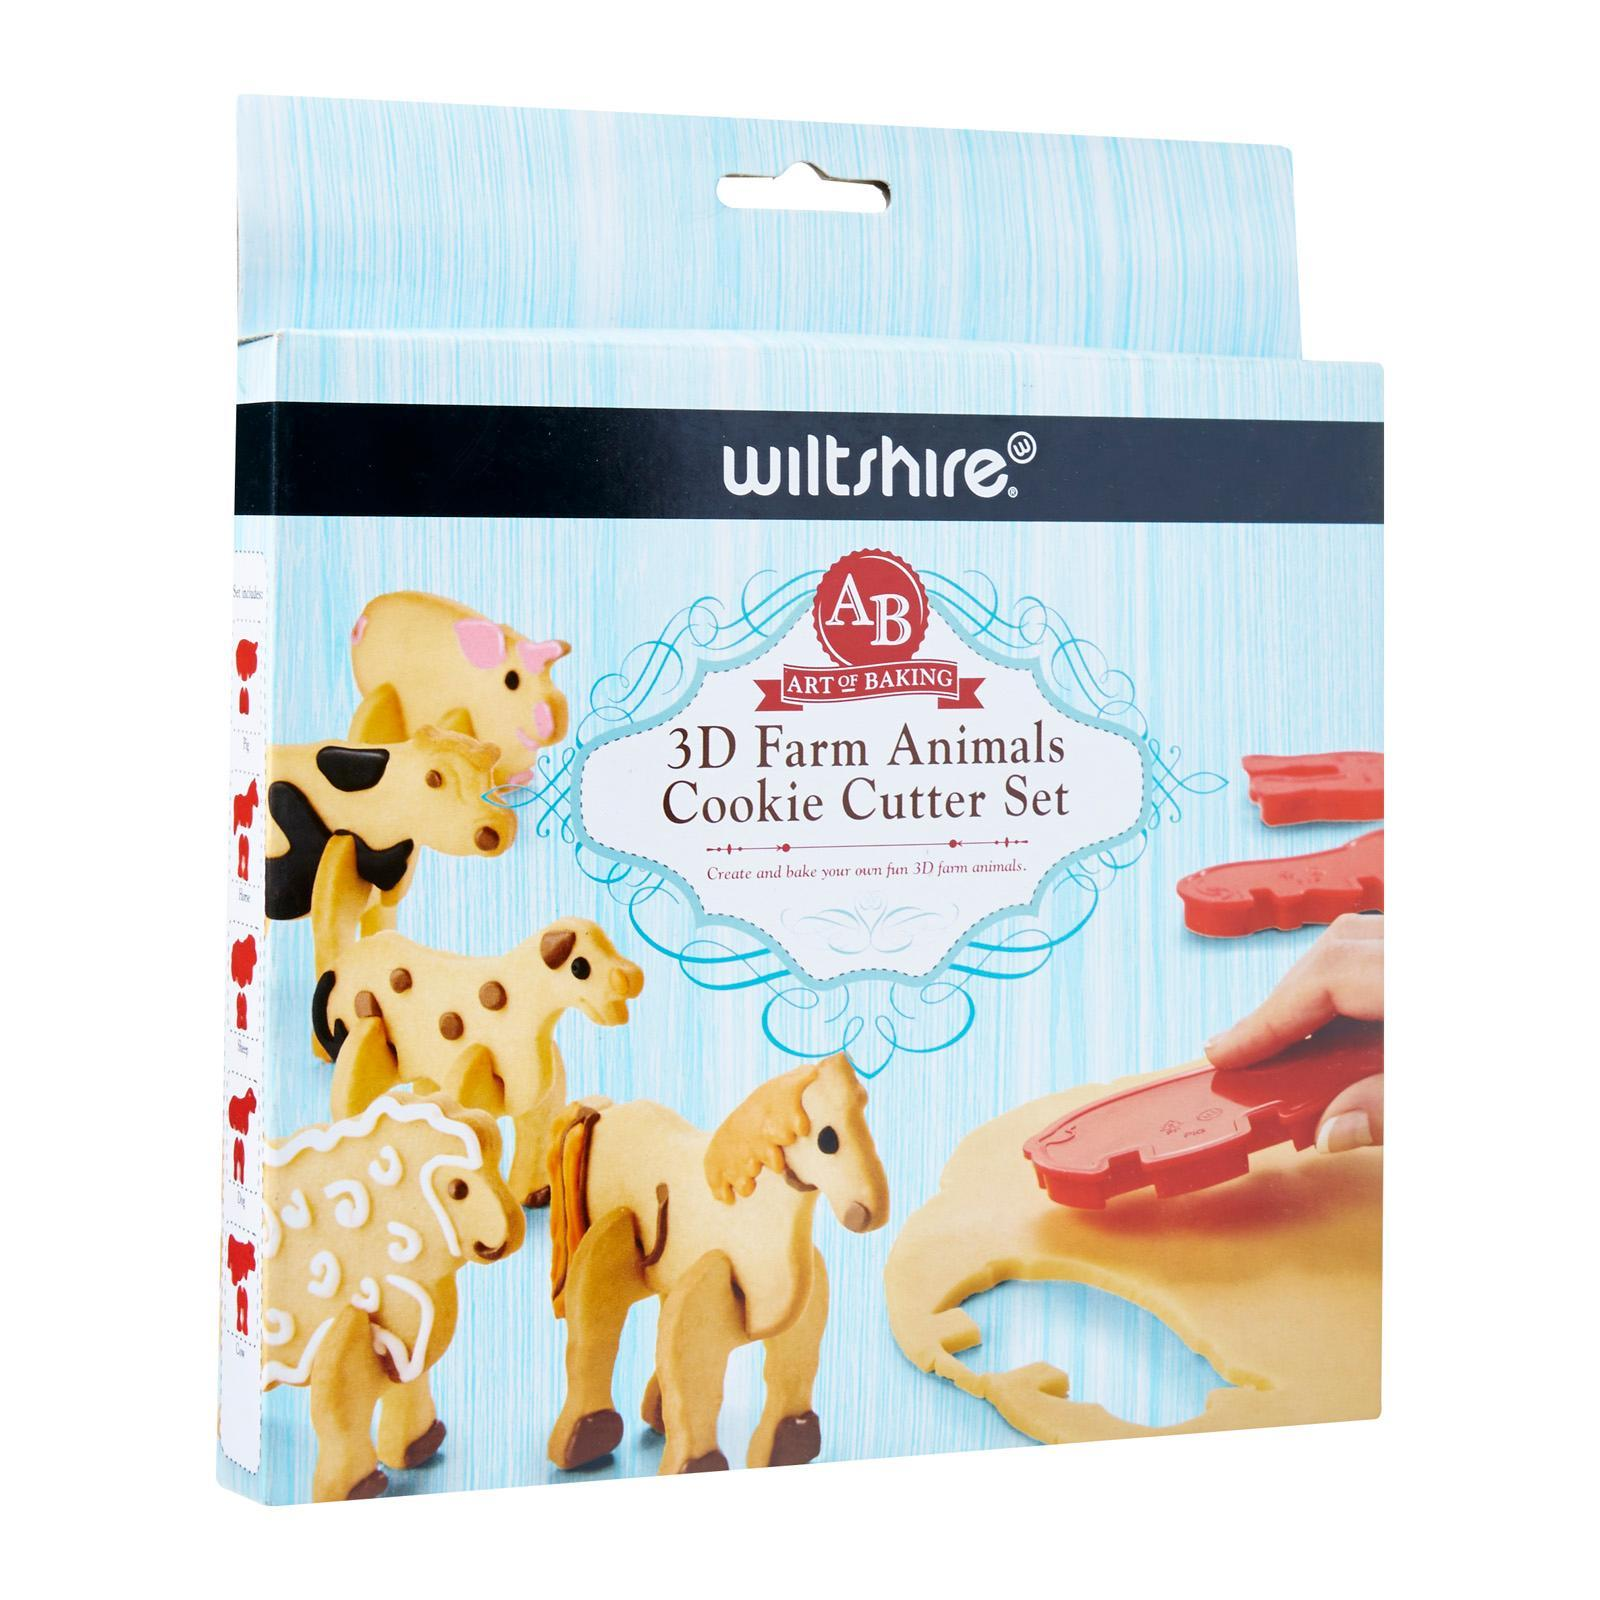 Wiltshire Art Of Baking 3D Farm Animal Cookie Cutter